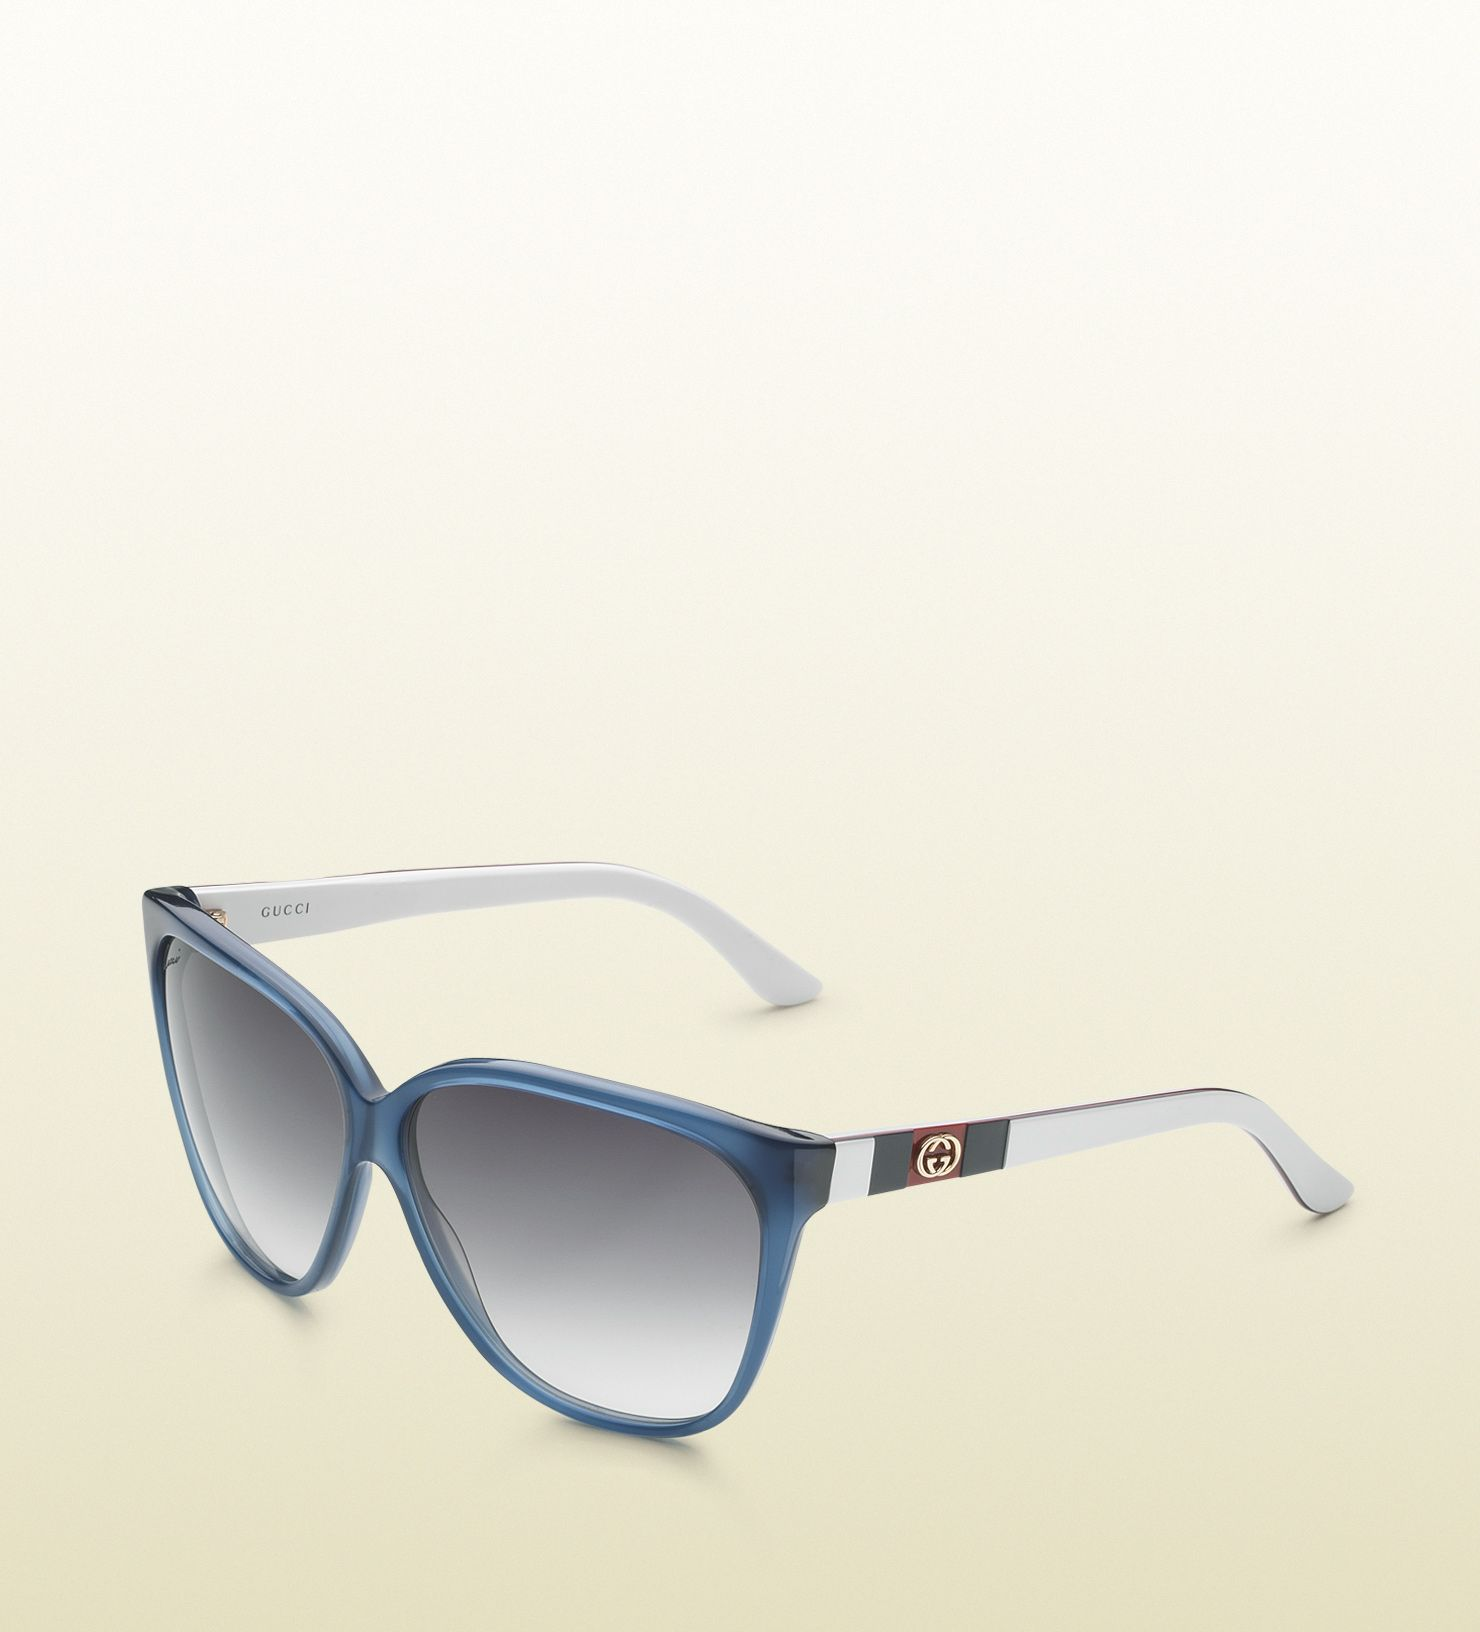 ccb96ac5a77d Gucci - large square frame sunglasses with GG logo and web on temples.  298606J07404179